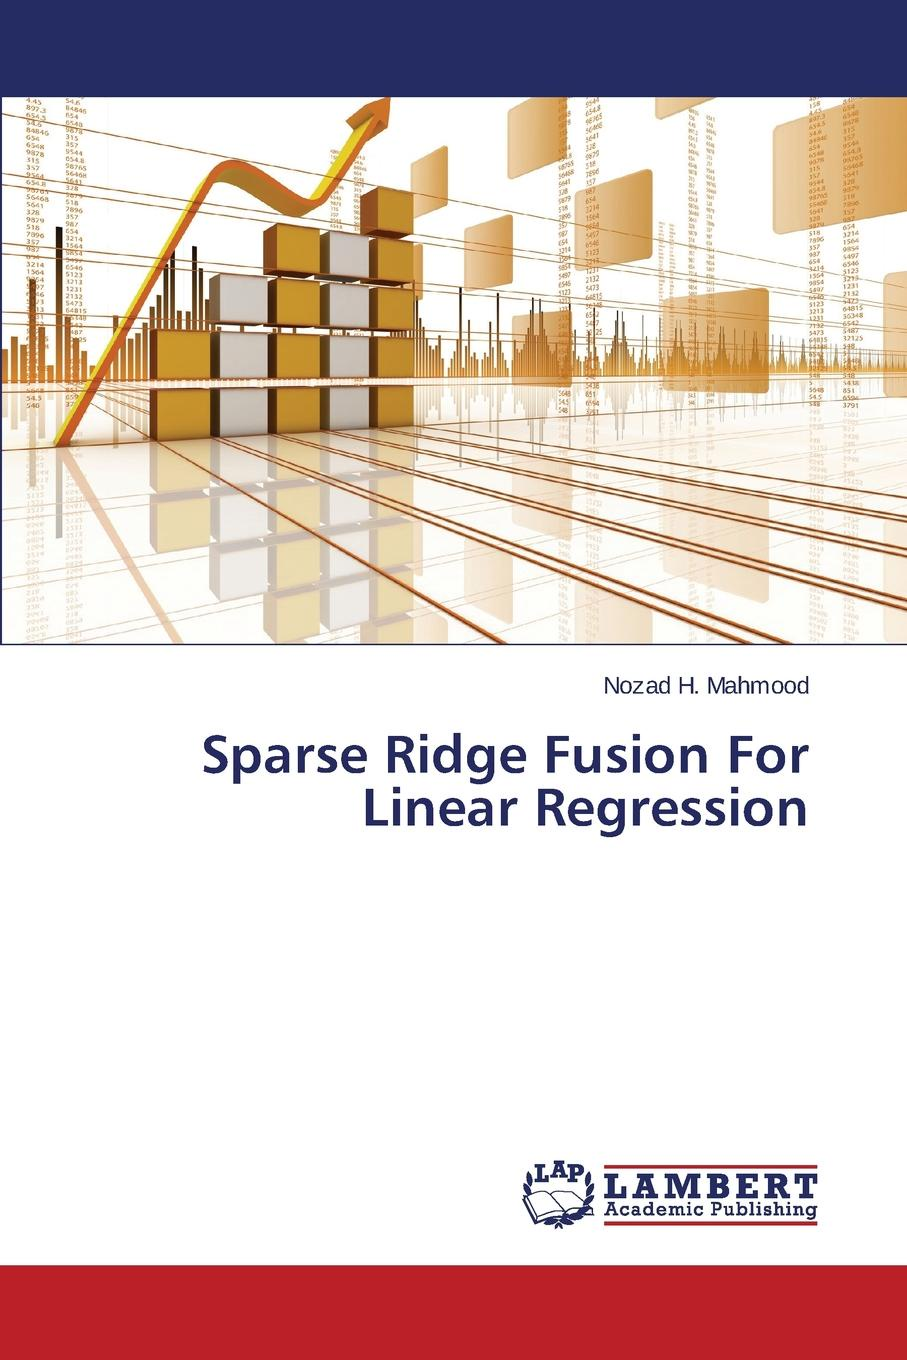 Mahmood Nozad H. Sparse Ridge Fusion For Linear Regression w n p barbellion the journal of a disappointed man